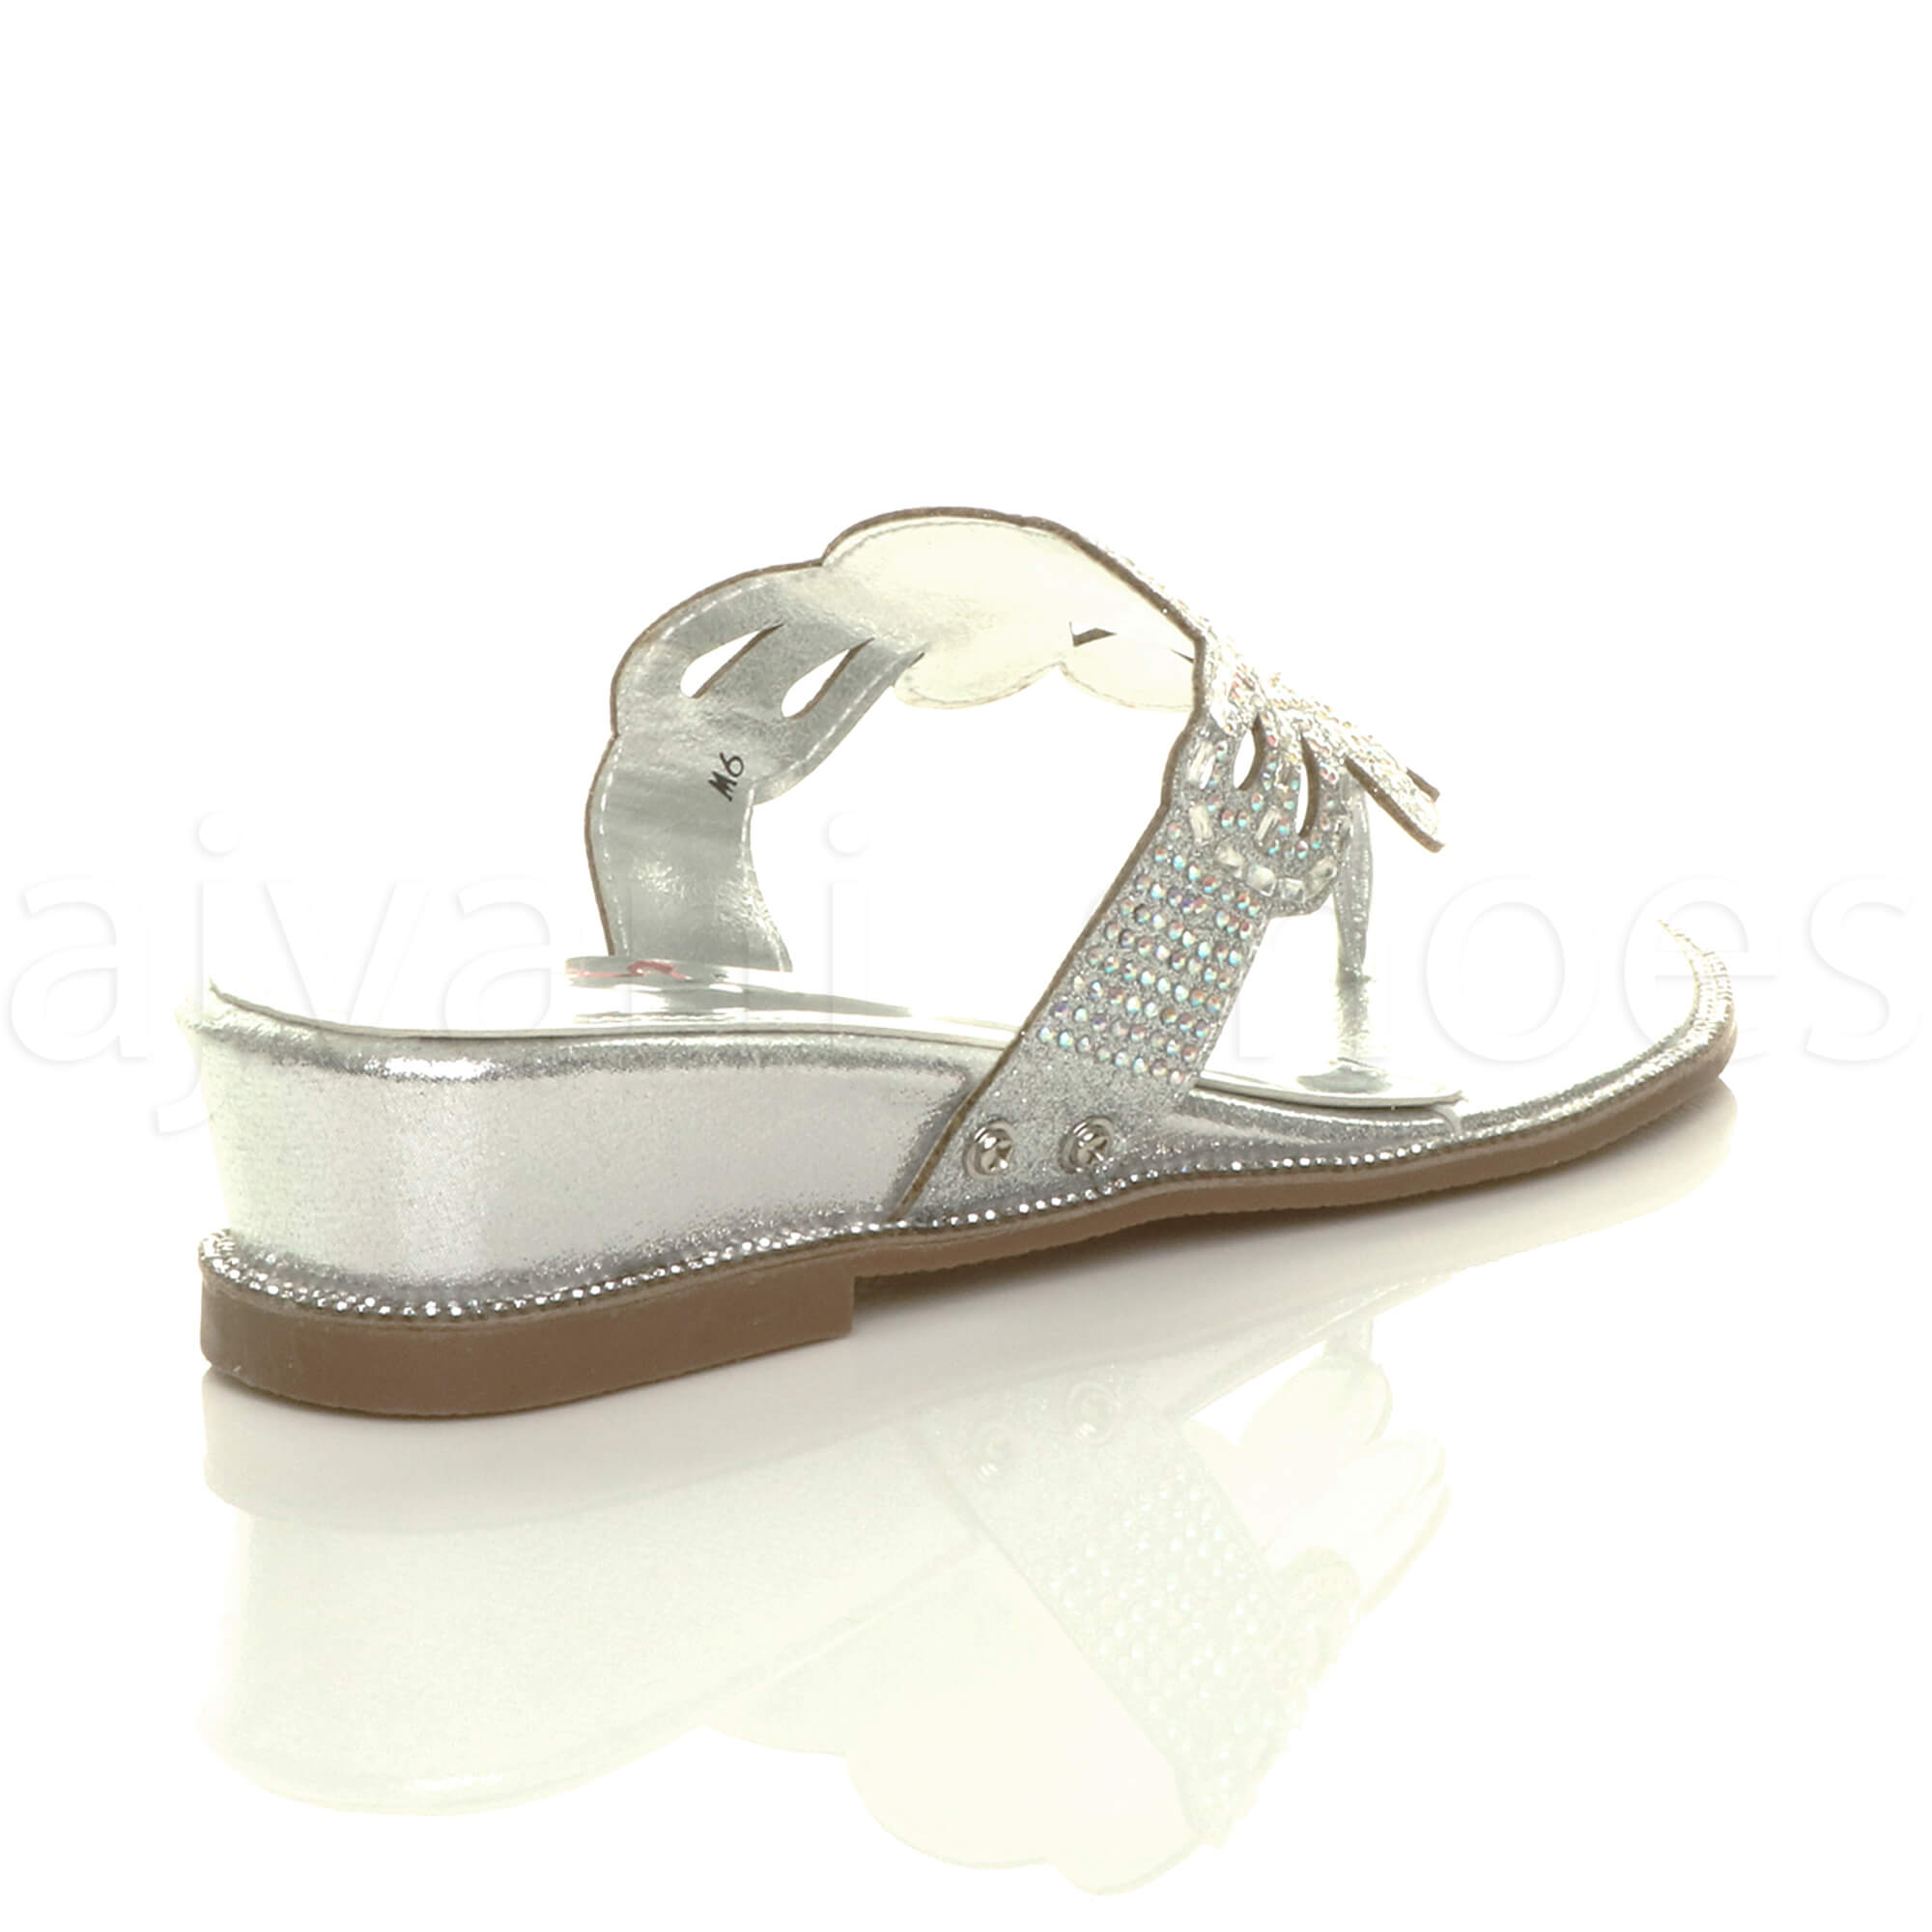 WOMENS-LADIES-LOW-MID-WEDGE-HEEL-DIAMANTE-EVENING-TOE-POST-SANDALS-MULES-SIZE thumbnail 21